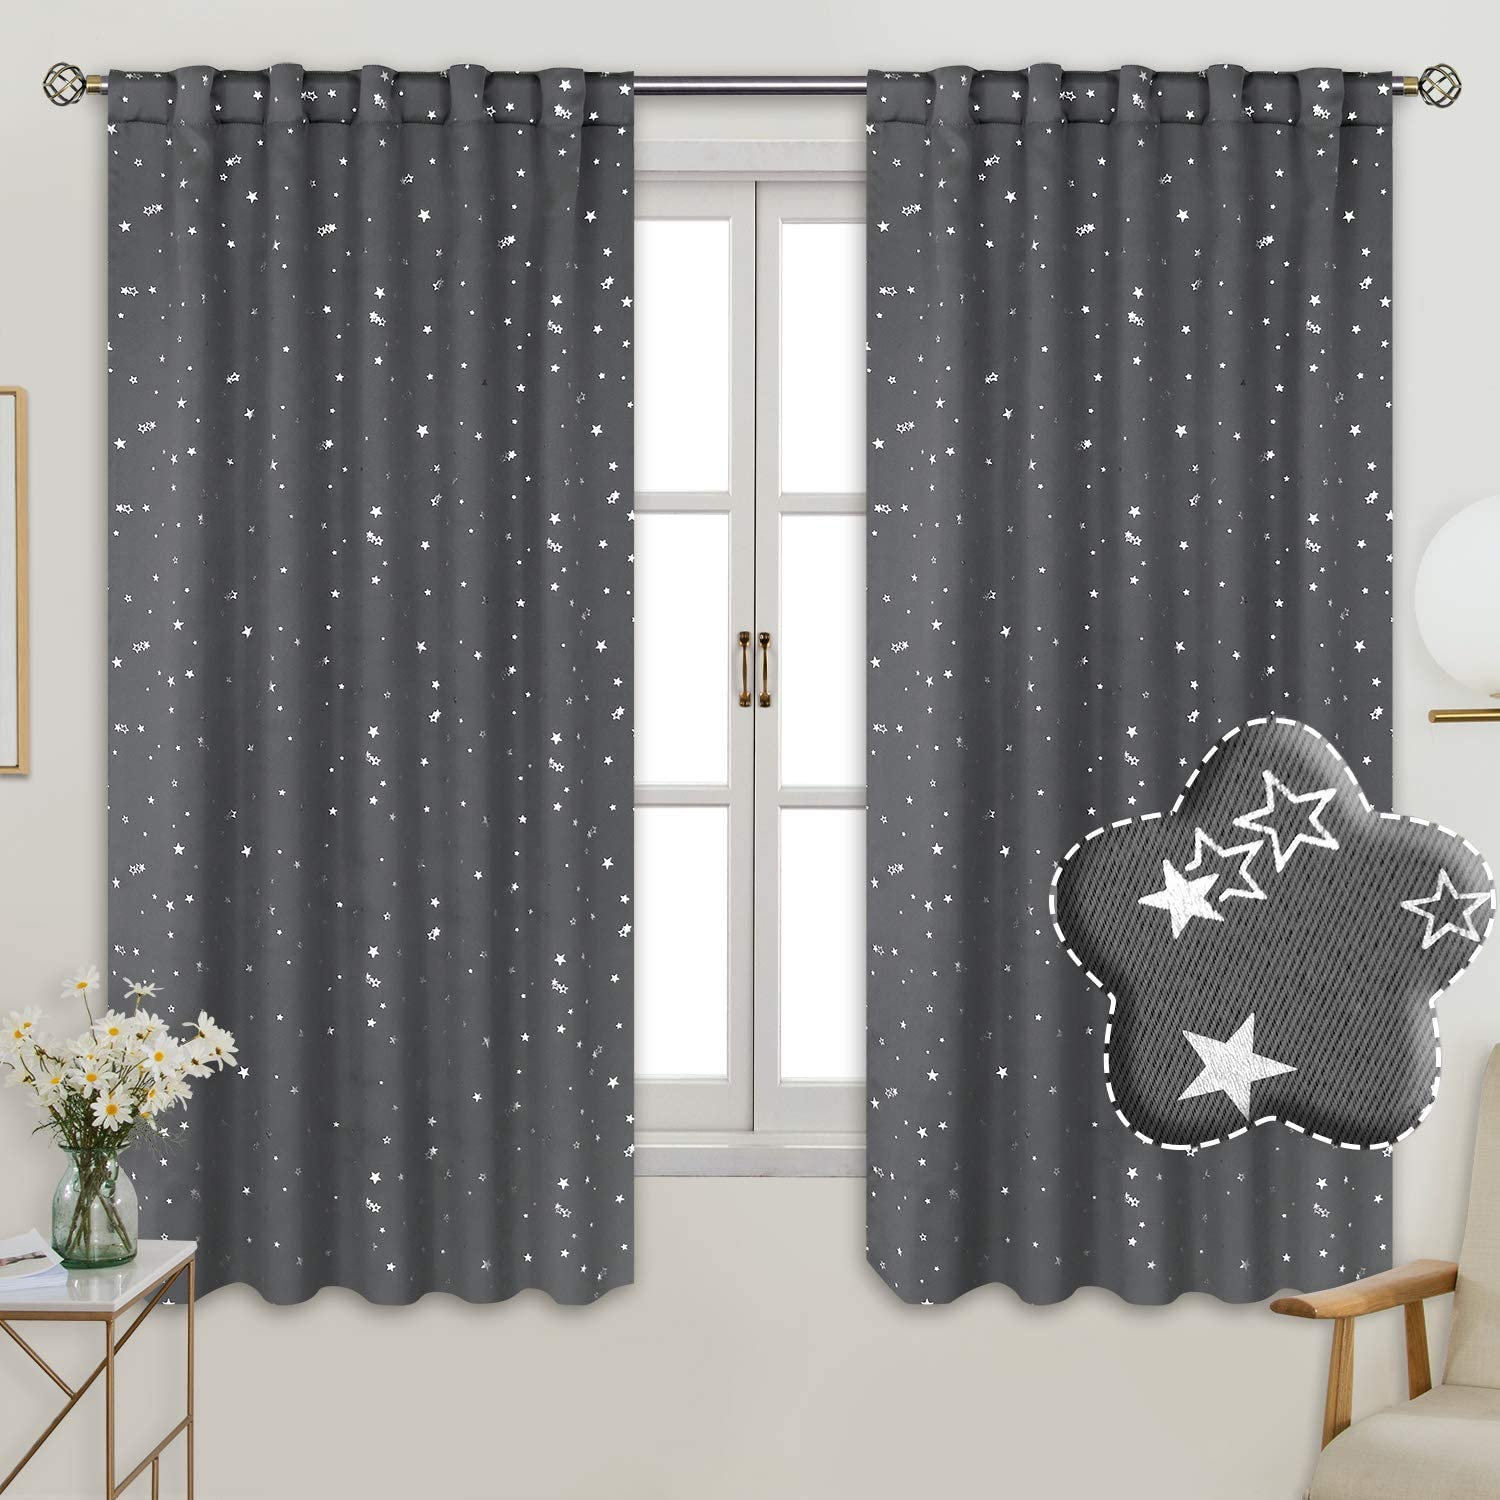 BGment Rod Pocket and Back Tab Blackout Curtains for Kids Bedroom - Sparkly Star Printed Thermal Insulated Room Darkening Curtain for Nursery, 42 x 63 Inch, 2 Panels, Grey